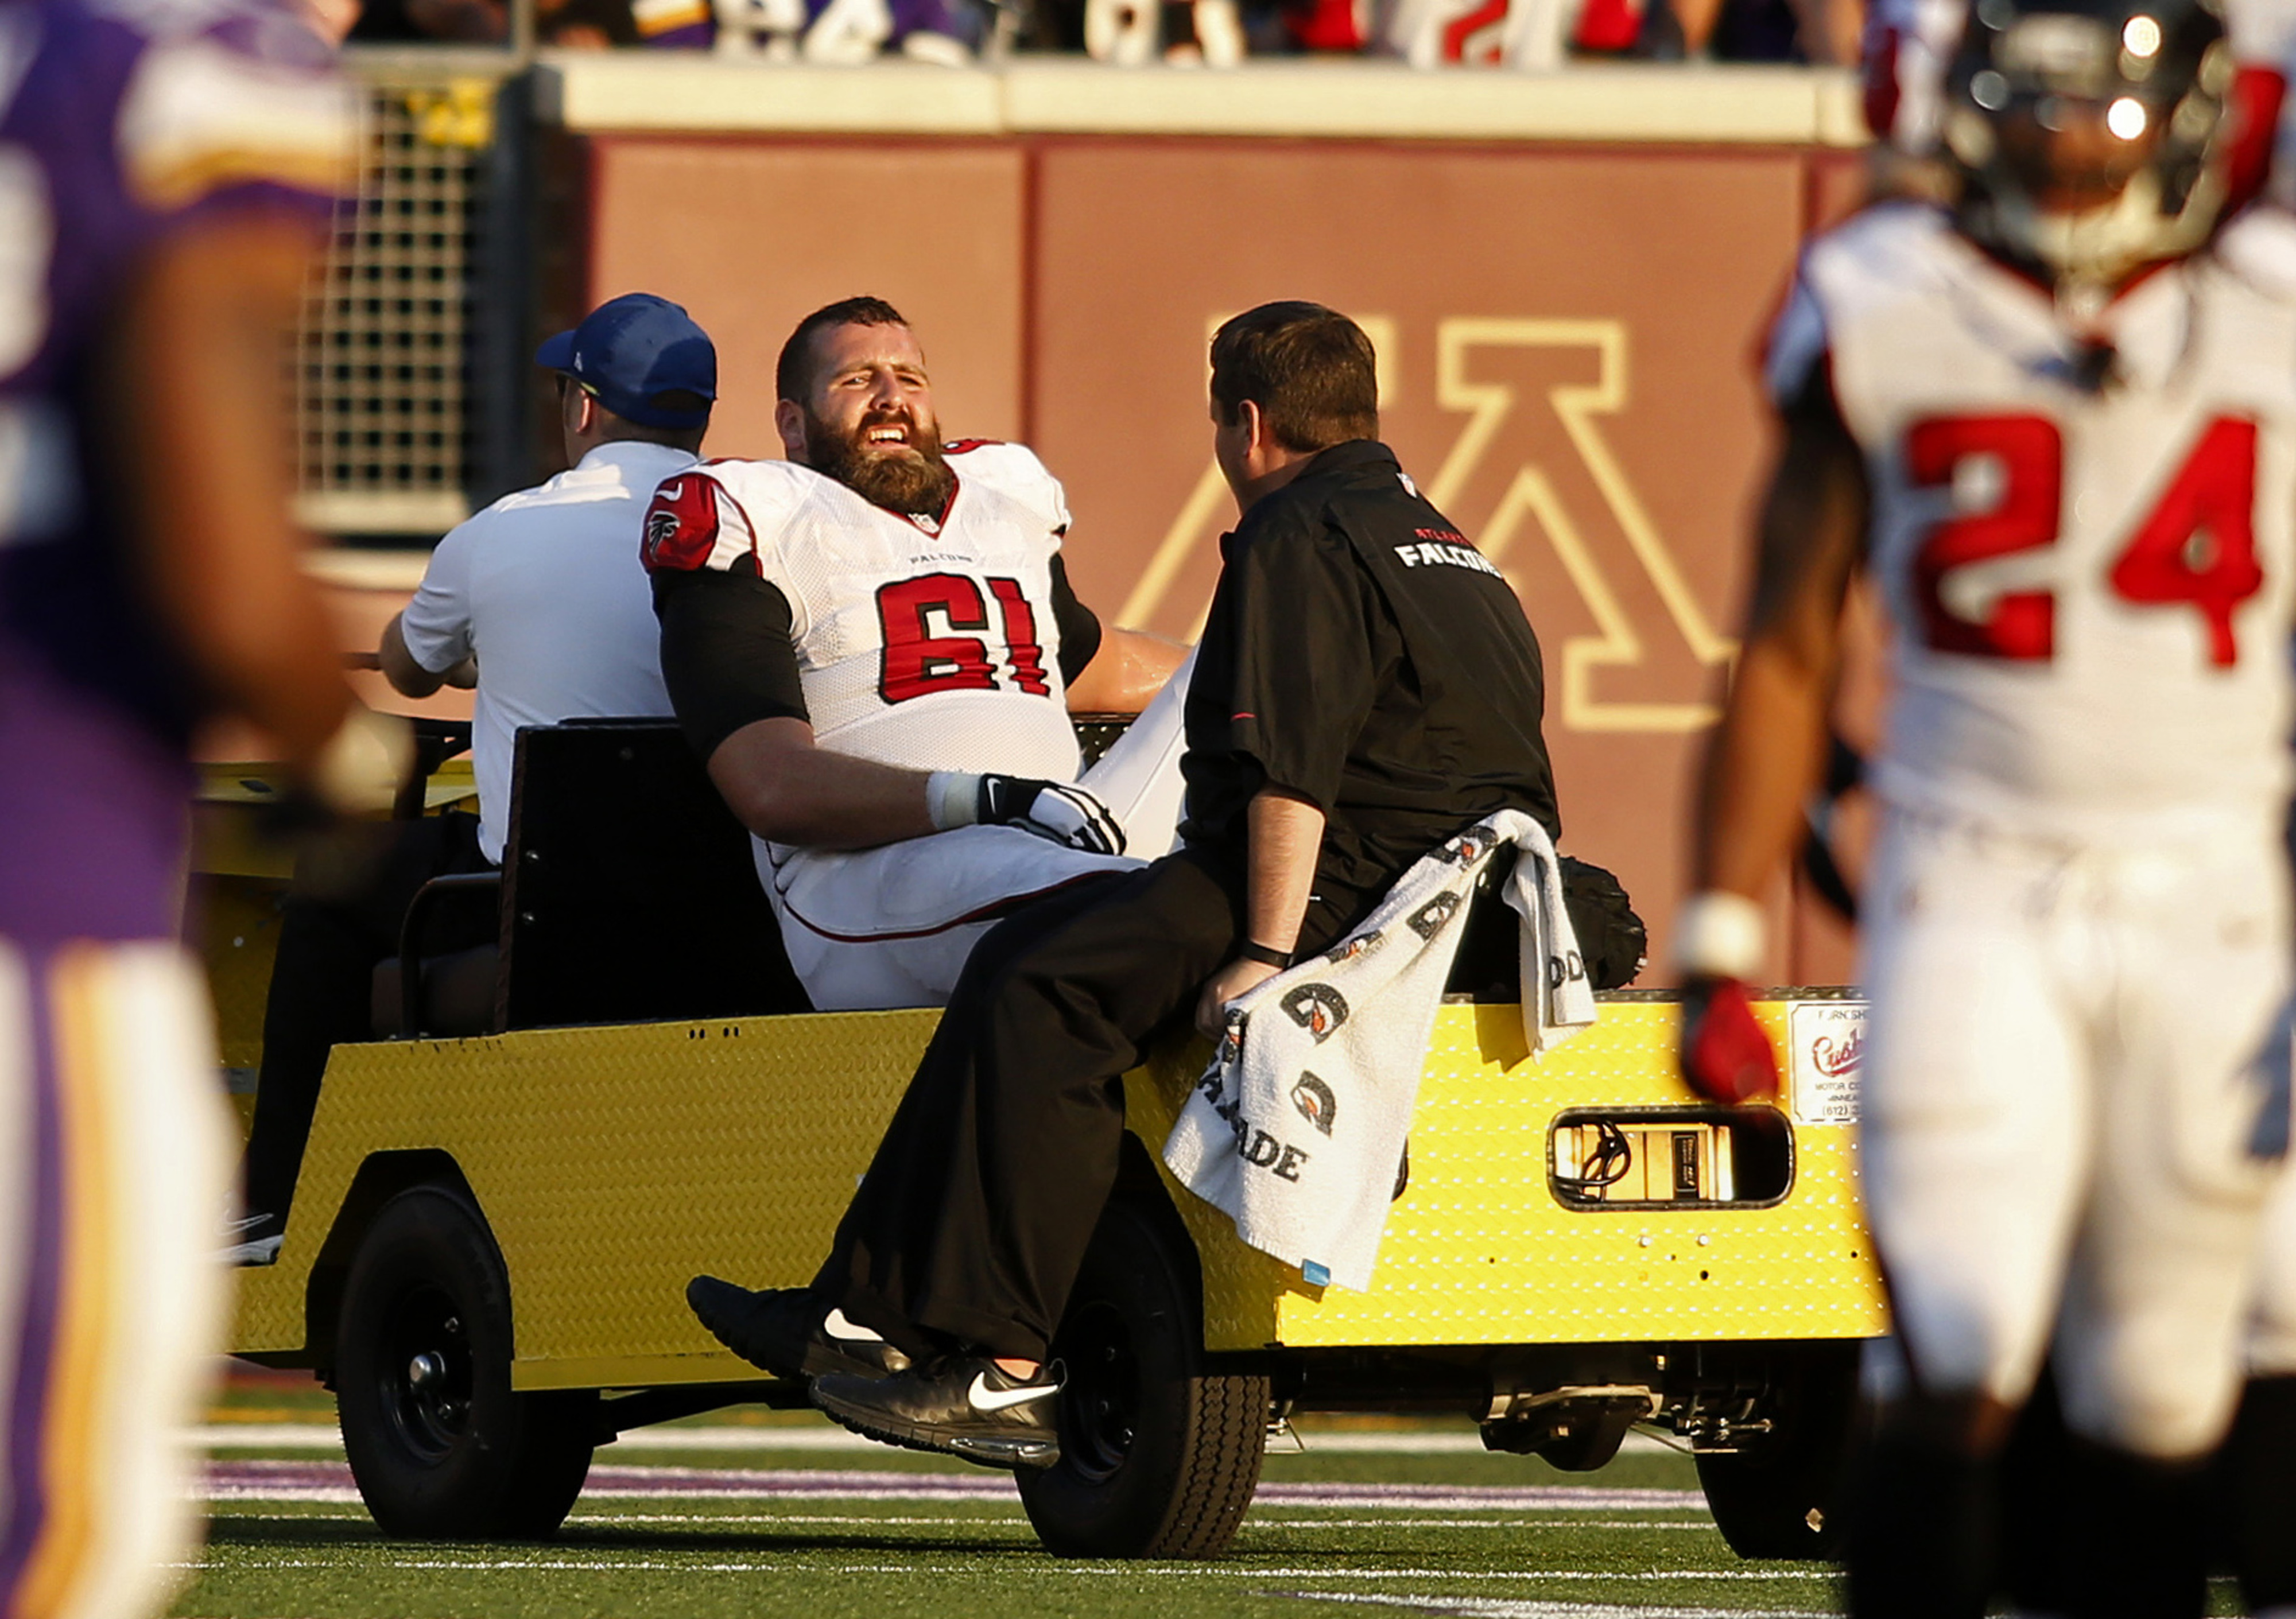 Center Joe Hawley is one of two Falcons offensive linemen to be placed on IR this week